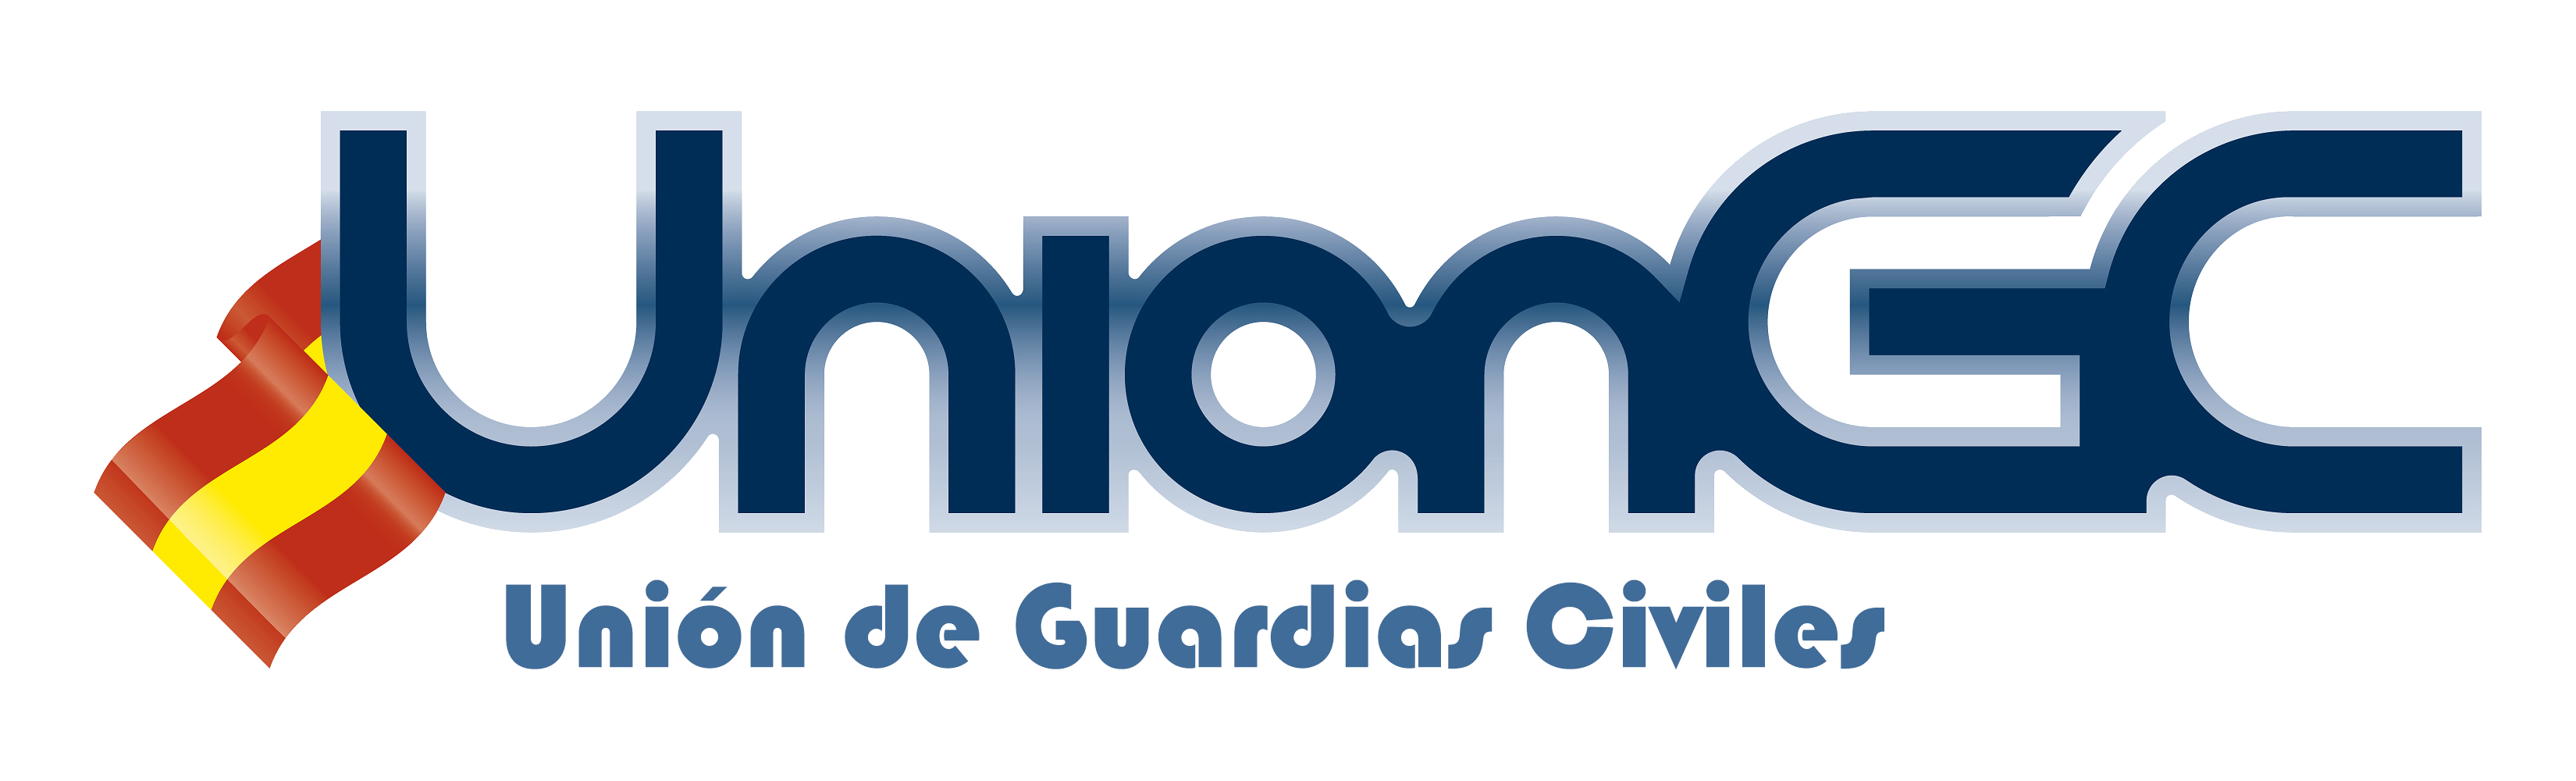 Union de Guardias Civiles